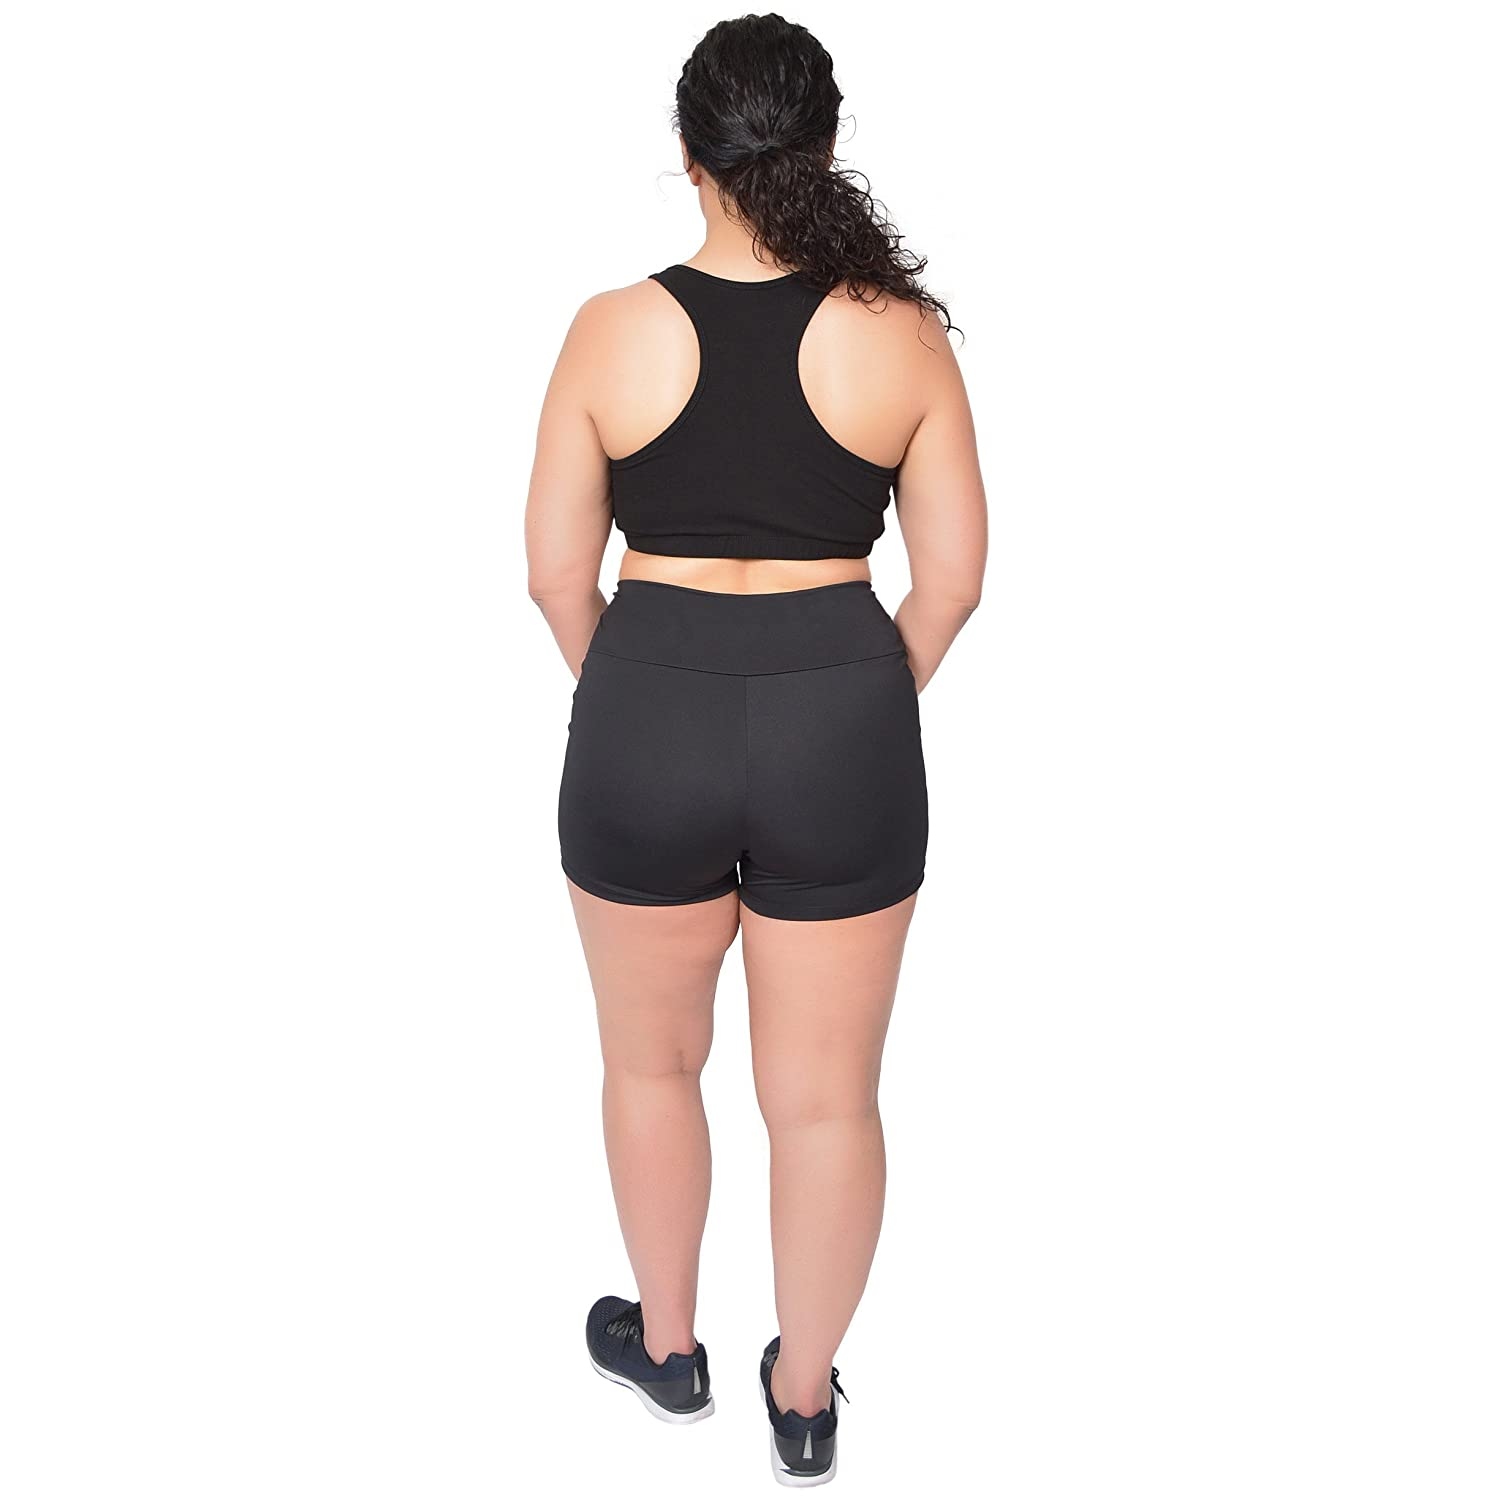 06846e436e5 ... Stretch Is Comfort Womens Plus Size Stretch Performance High Waist  Athletic Booty Shorts S0002PS-  ...